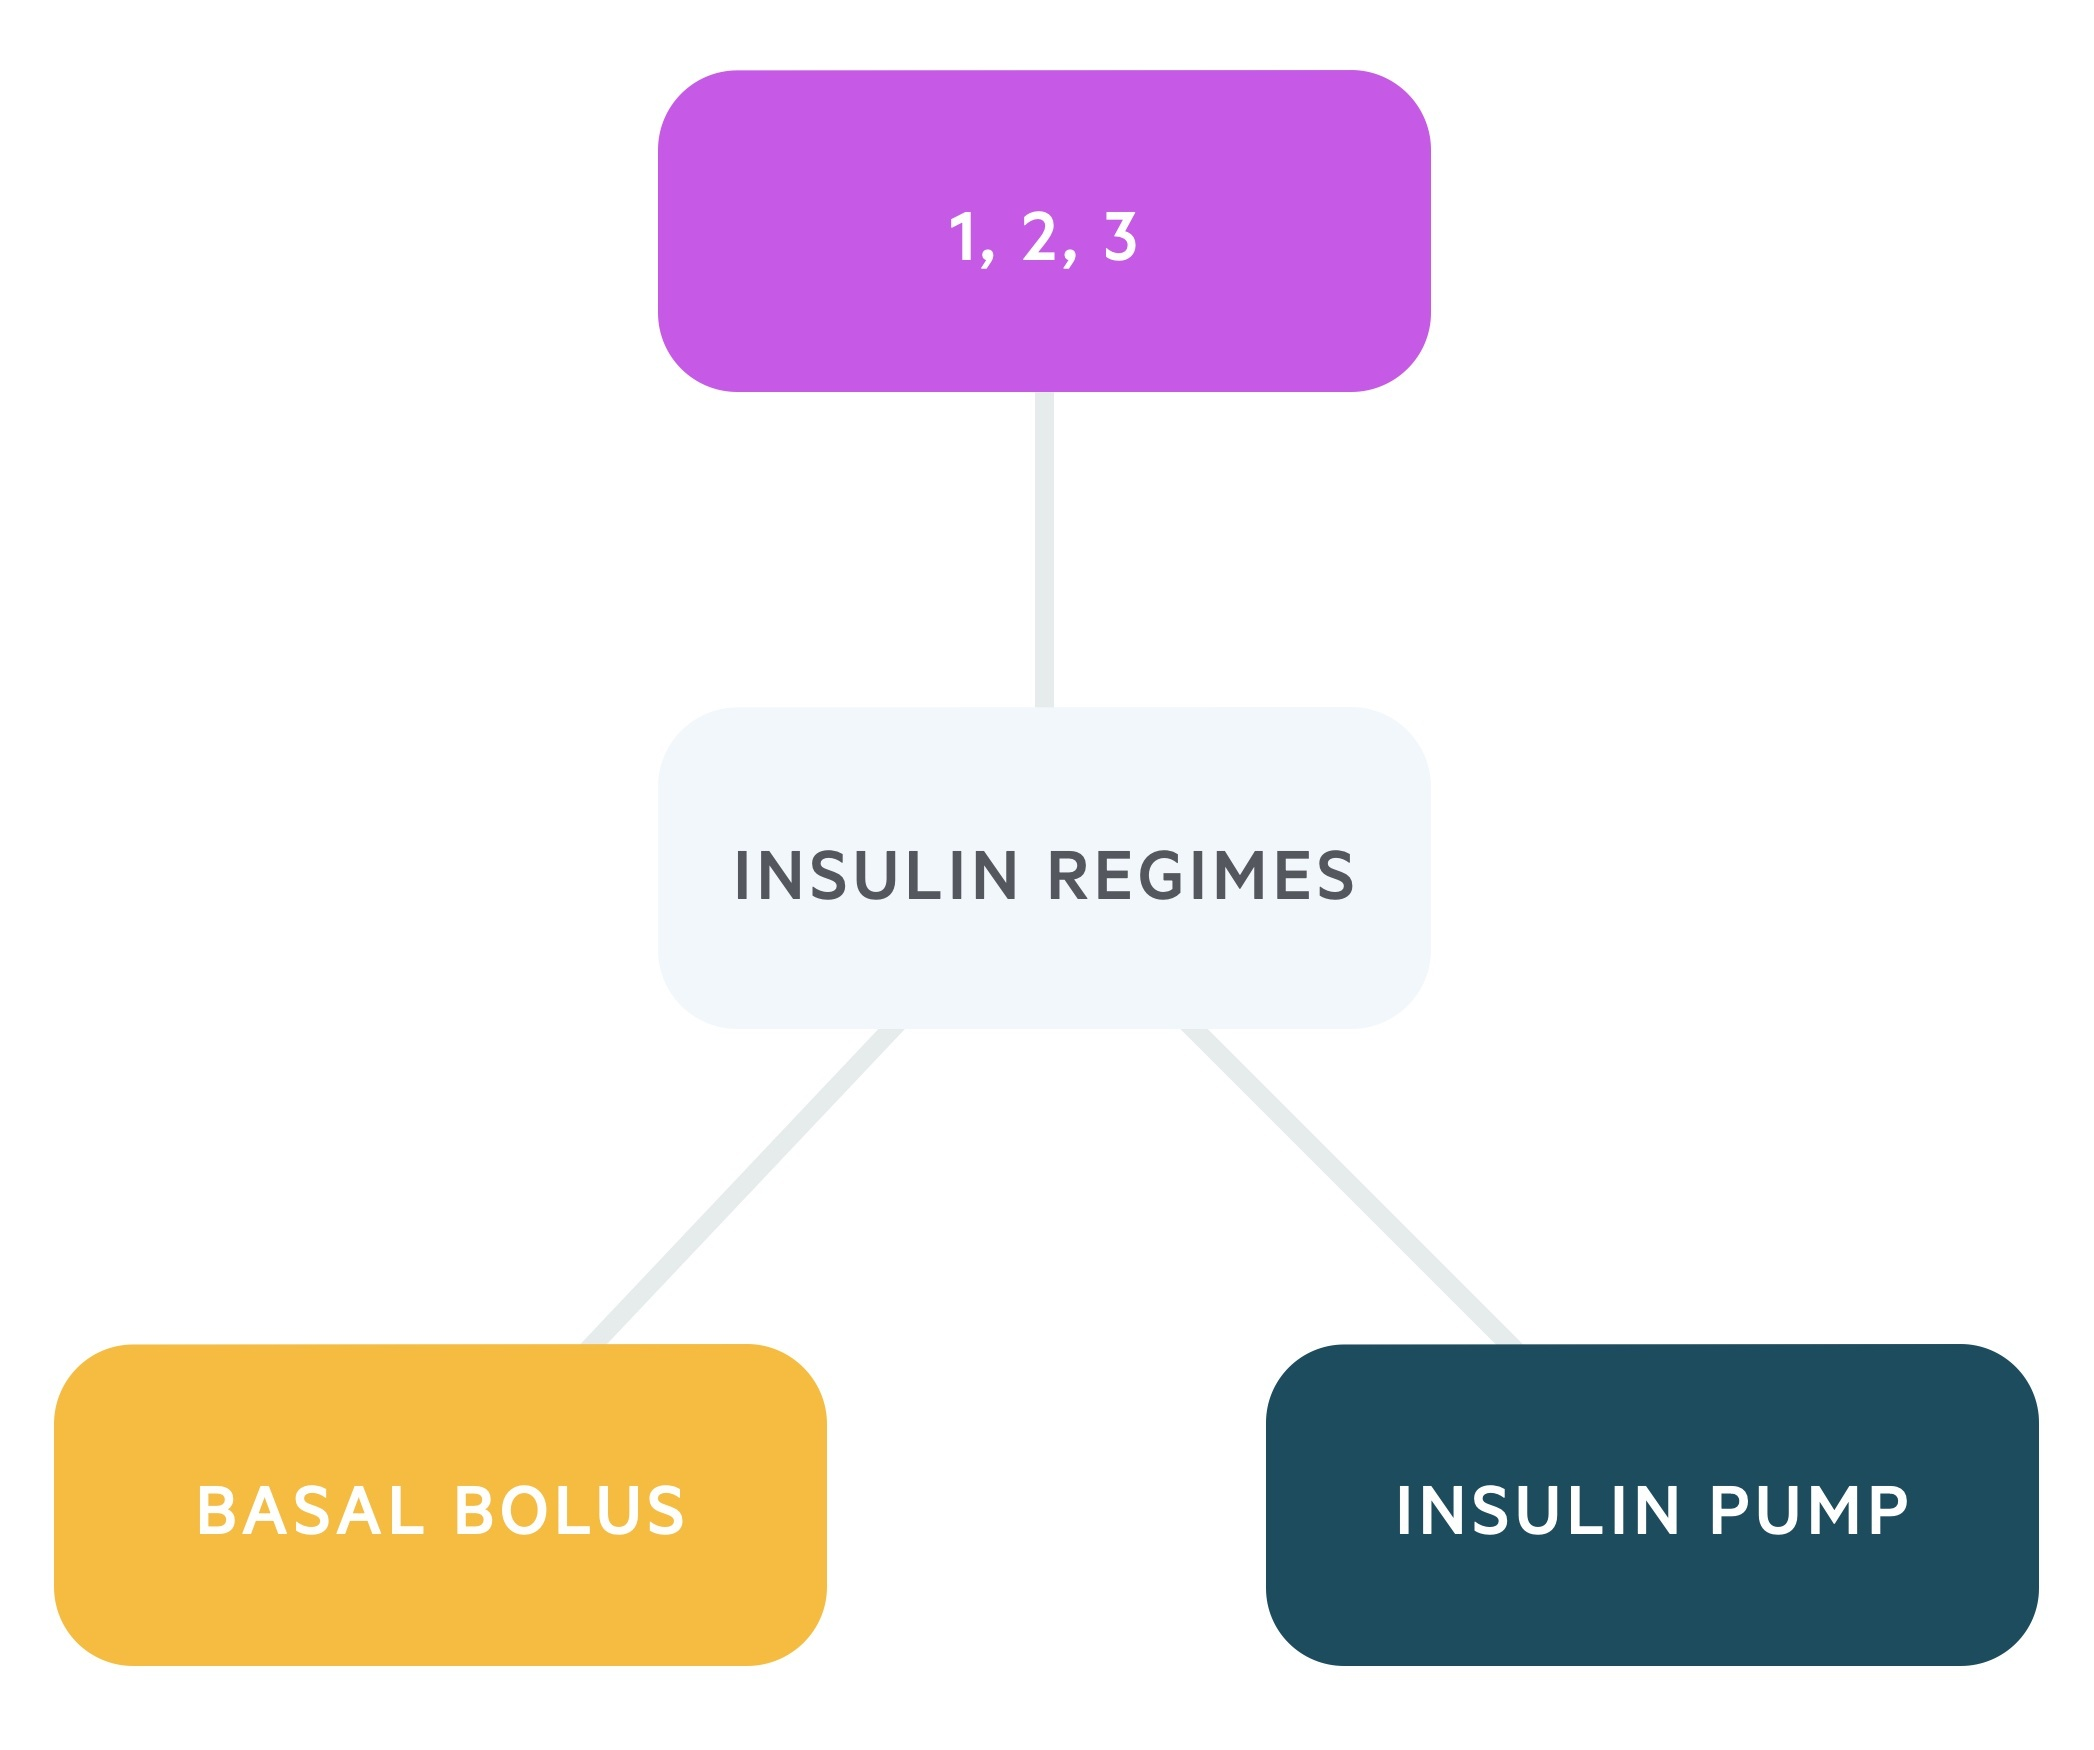 Insulin regimens in T1DM